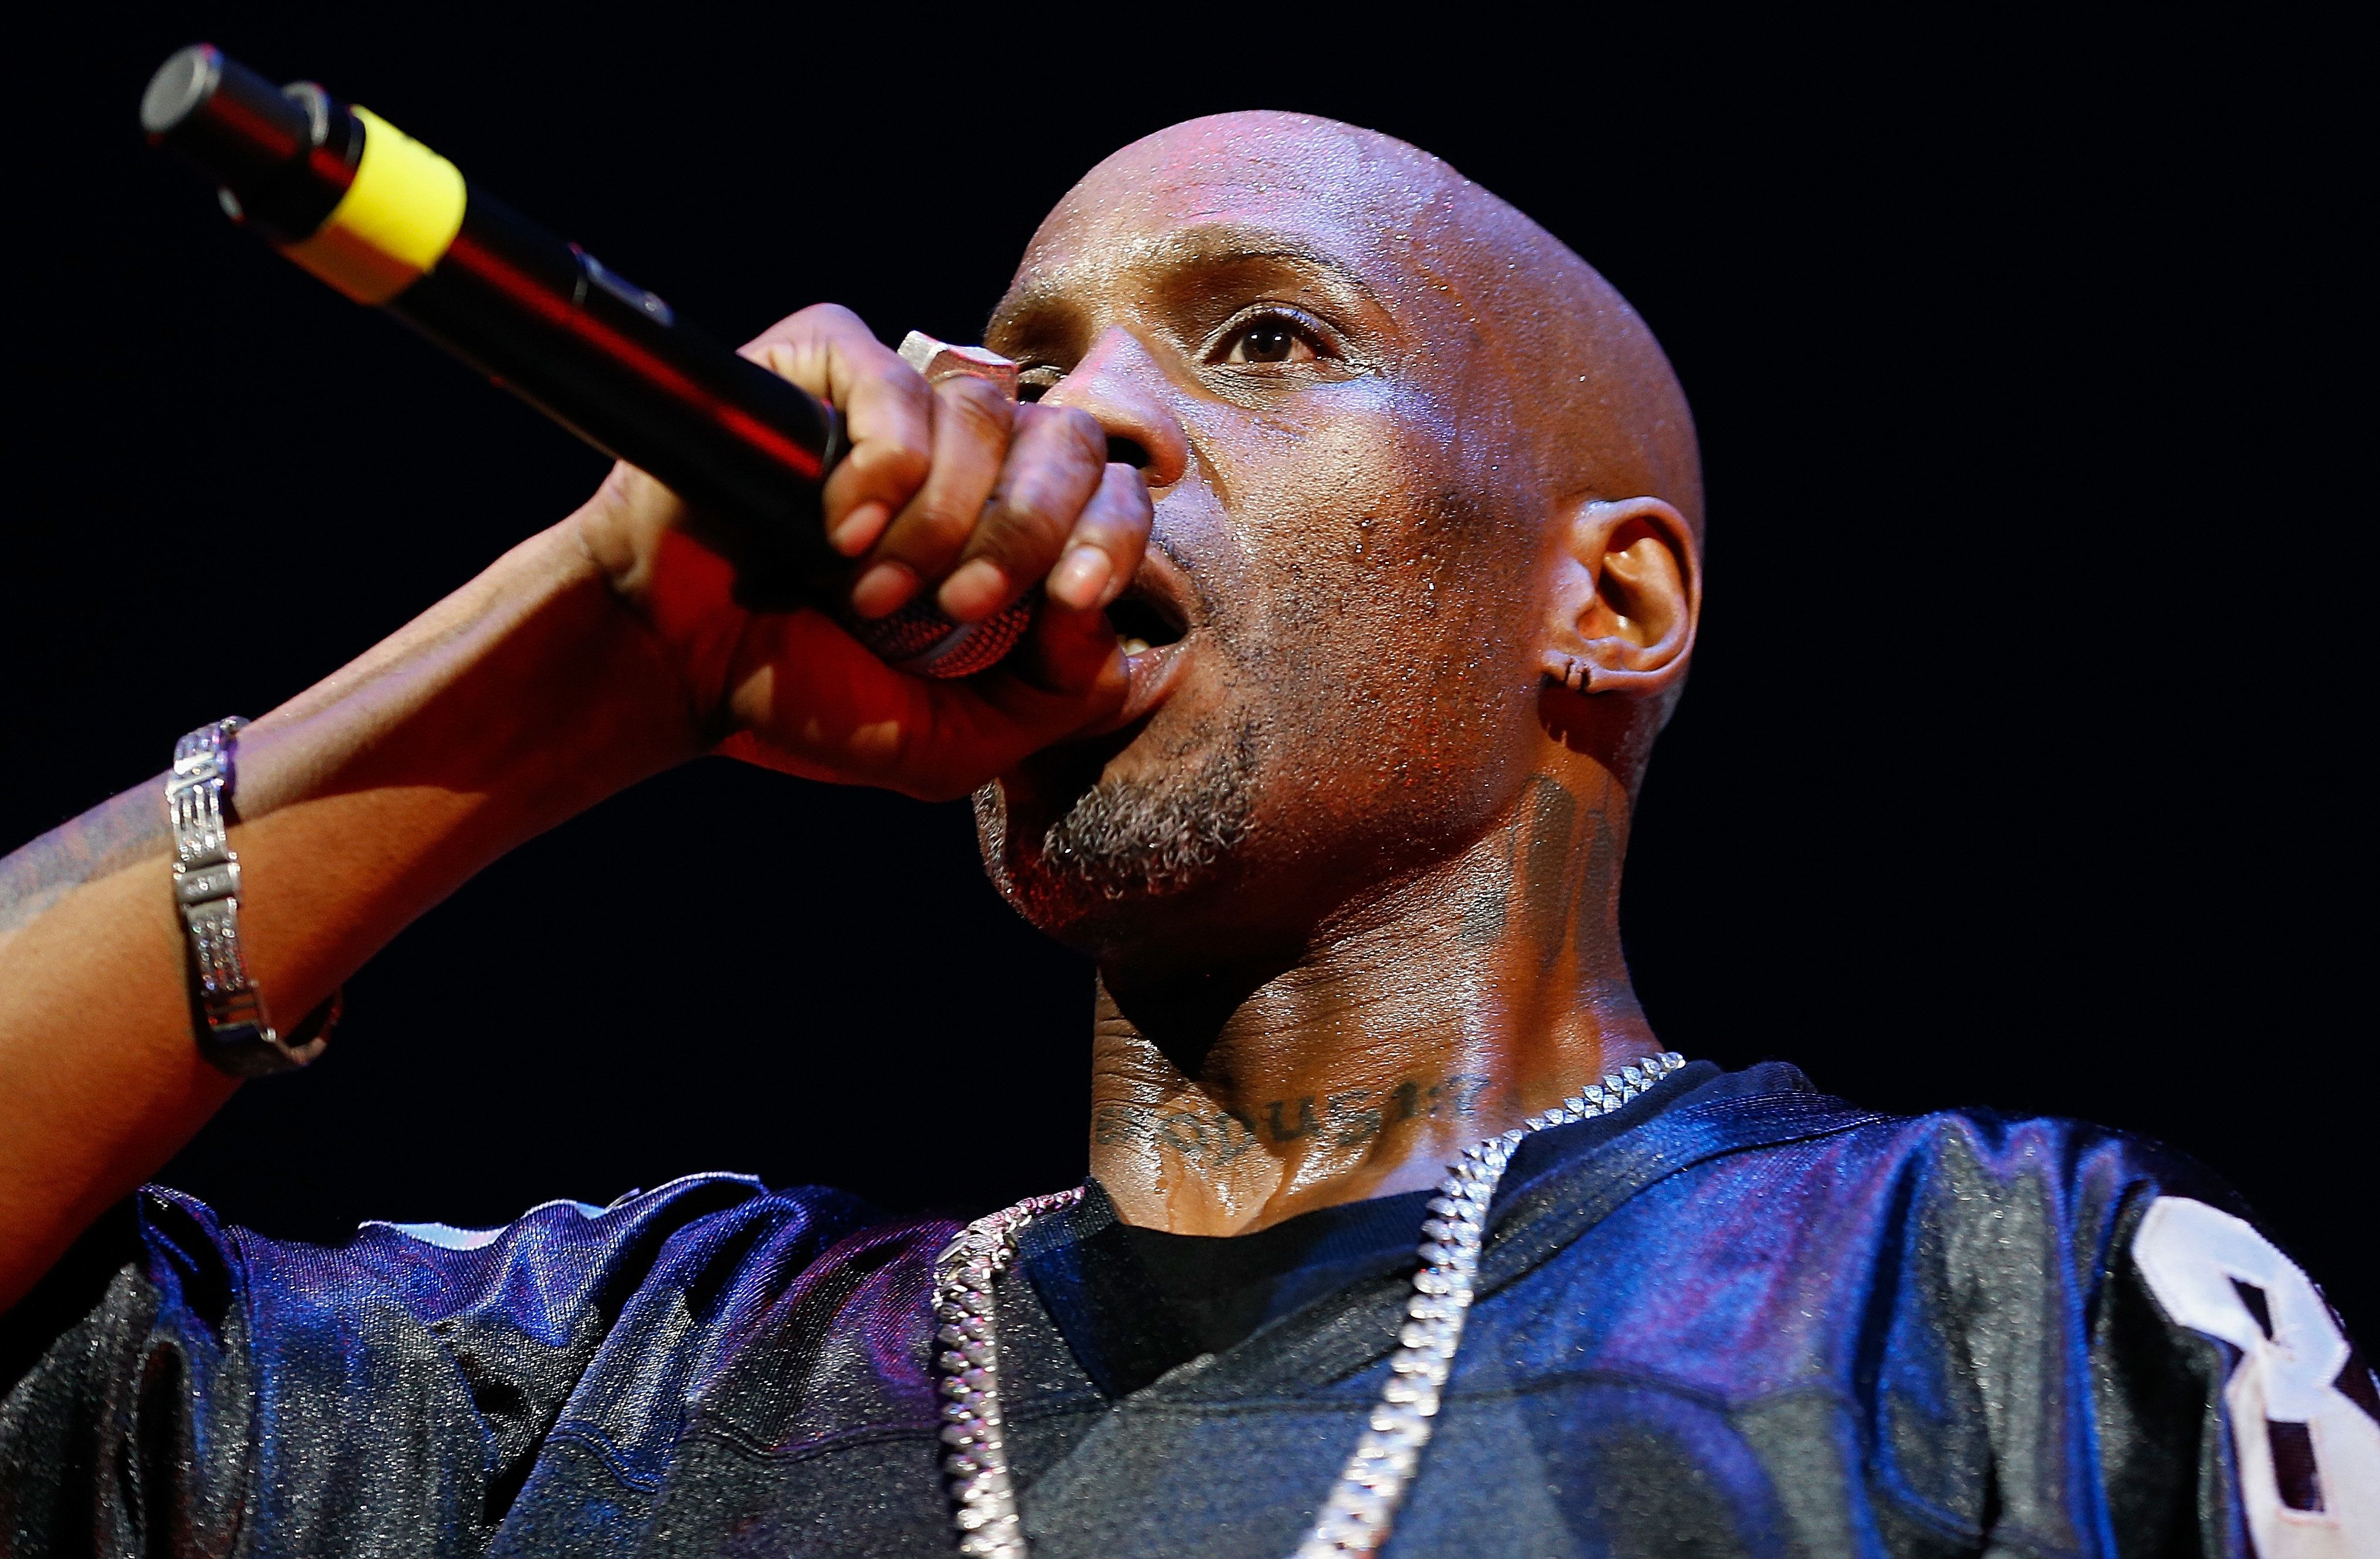 US Prosecutors: Rapper DMX Charged With Tax Evasion